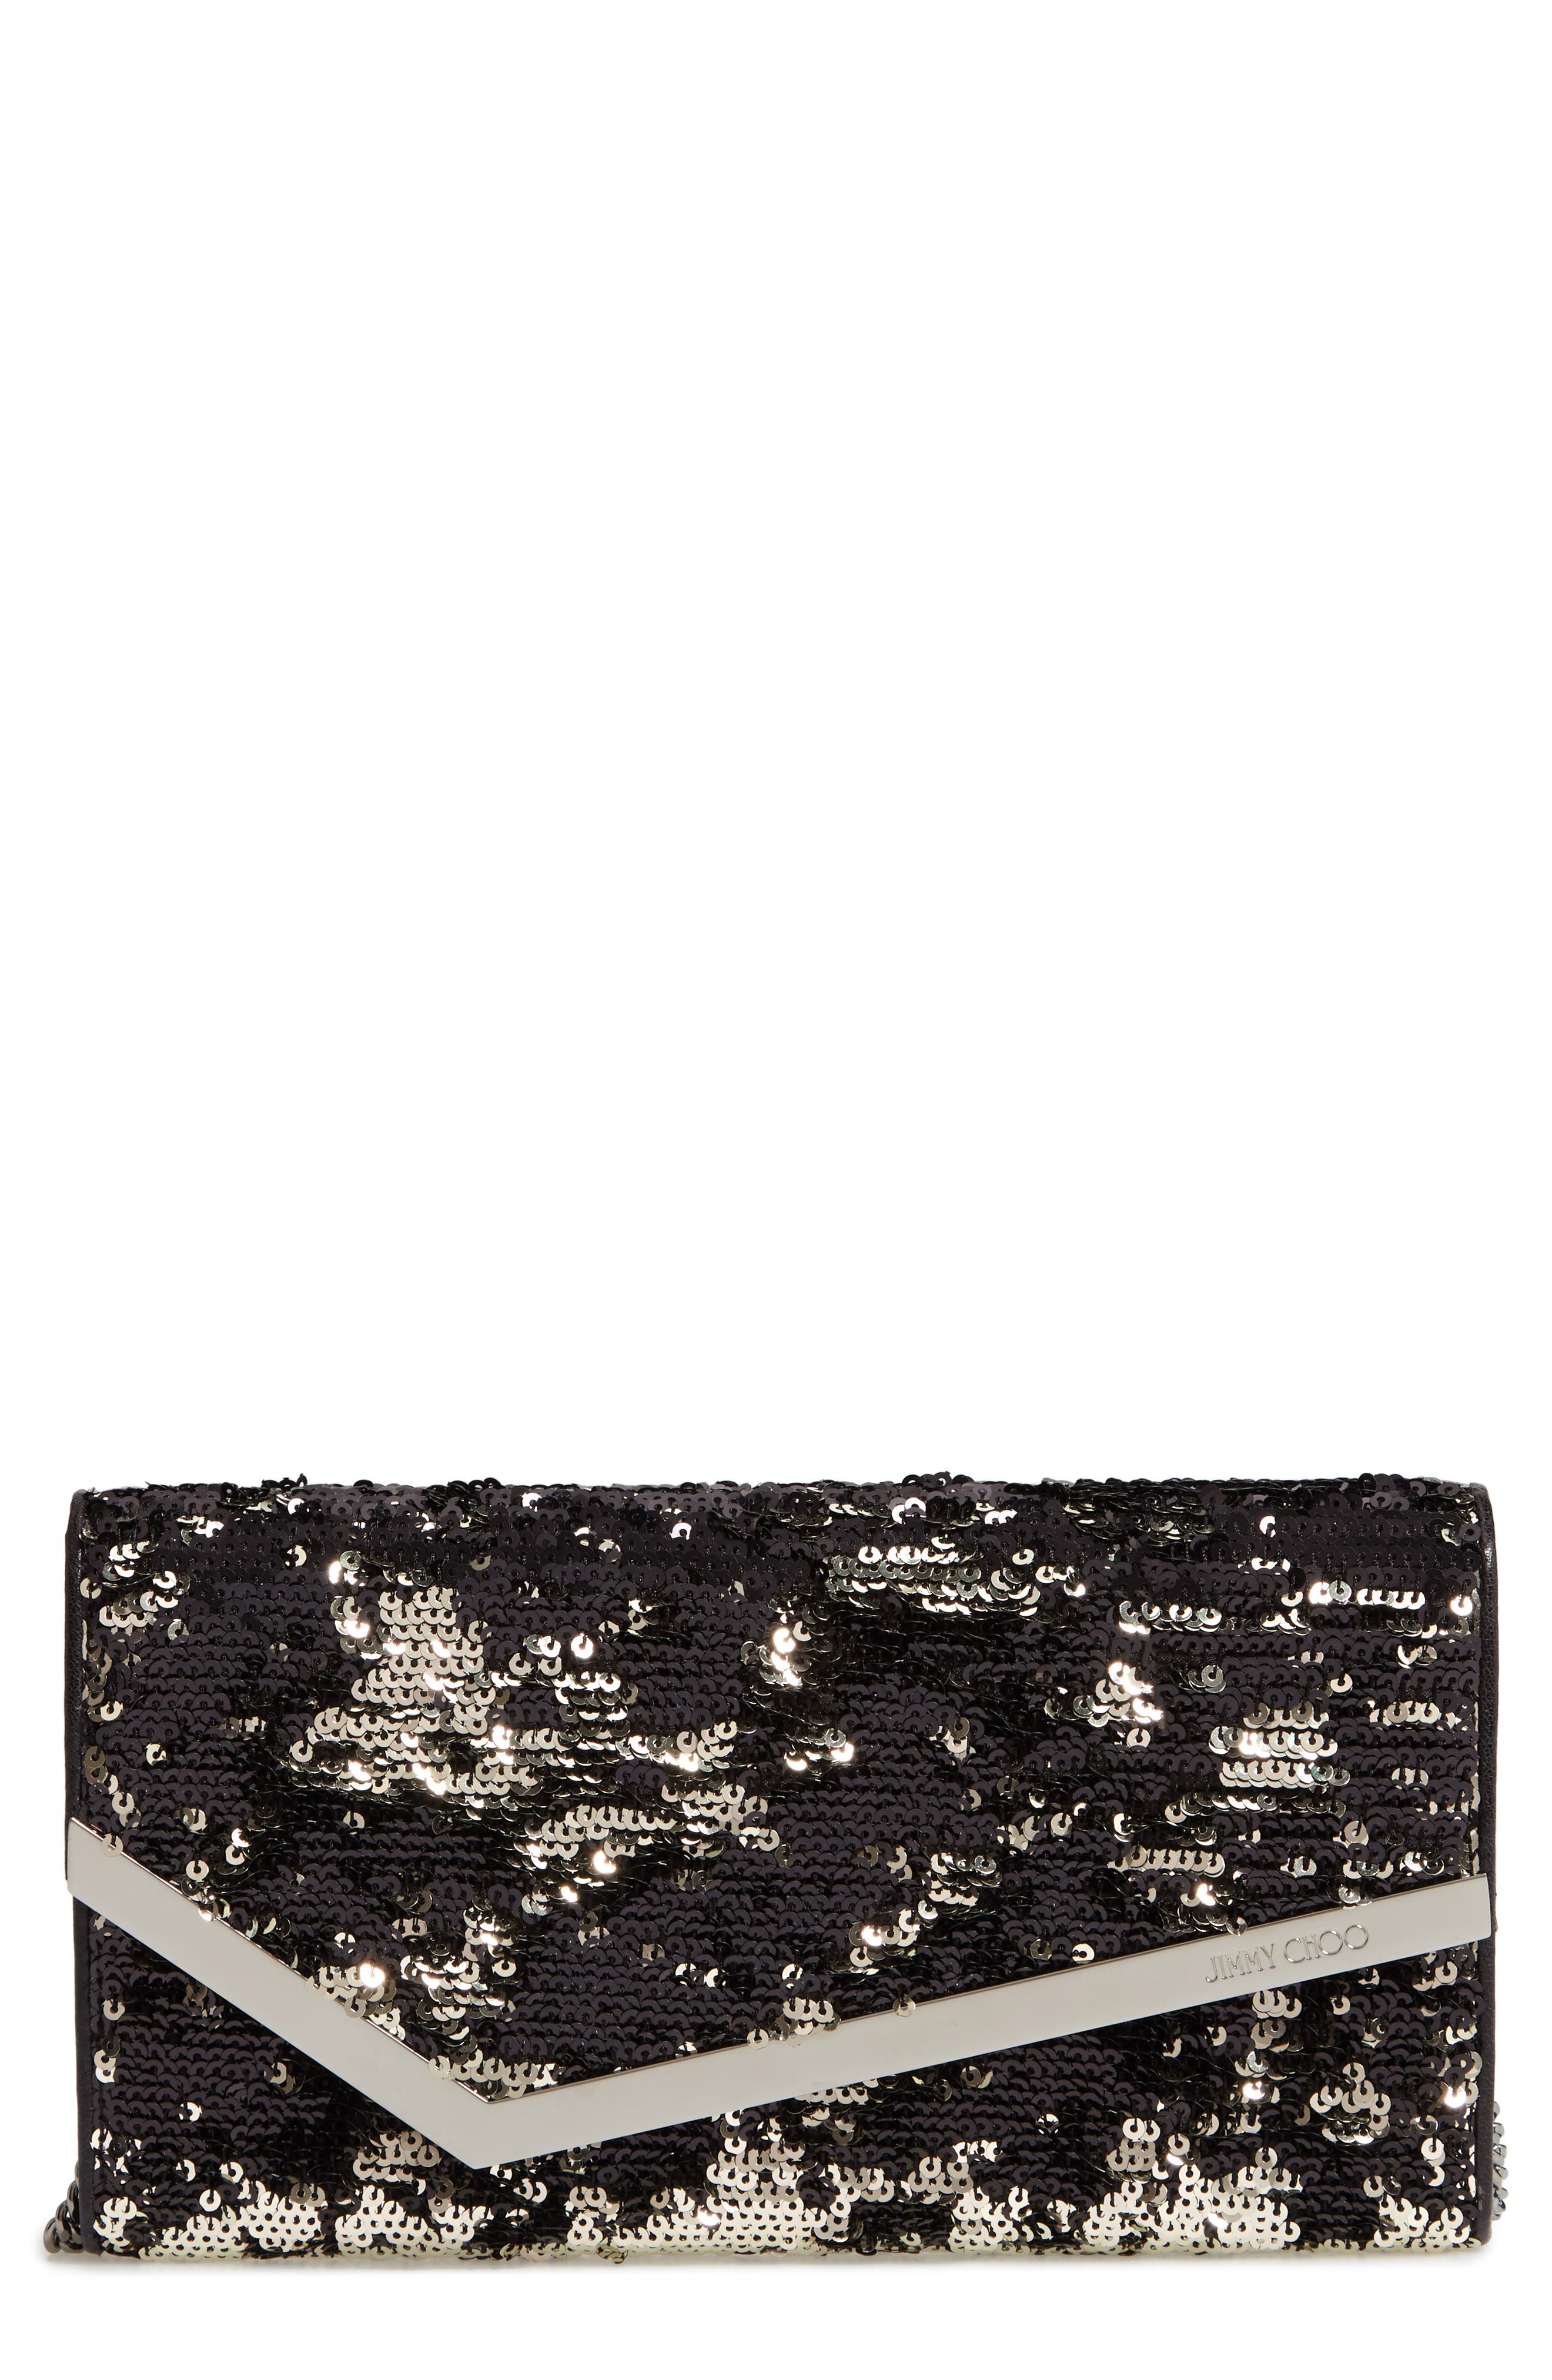 JIMMY CHOO Emmie Sequin Clutch, Main, color, BLACK/ SILVER